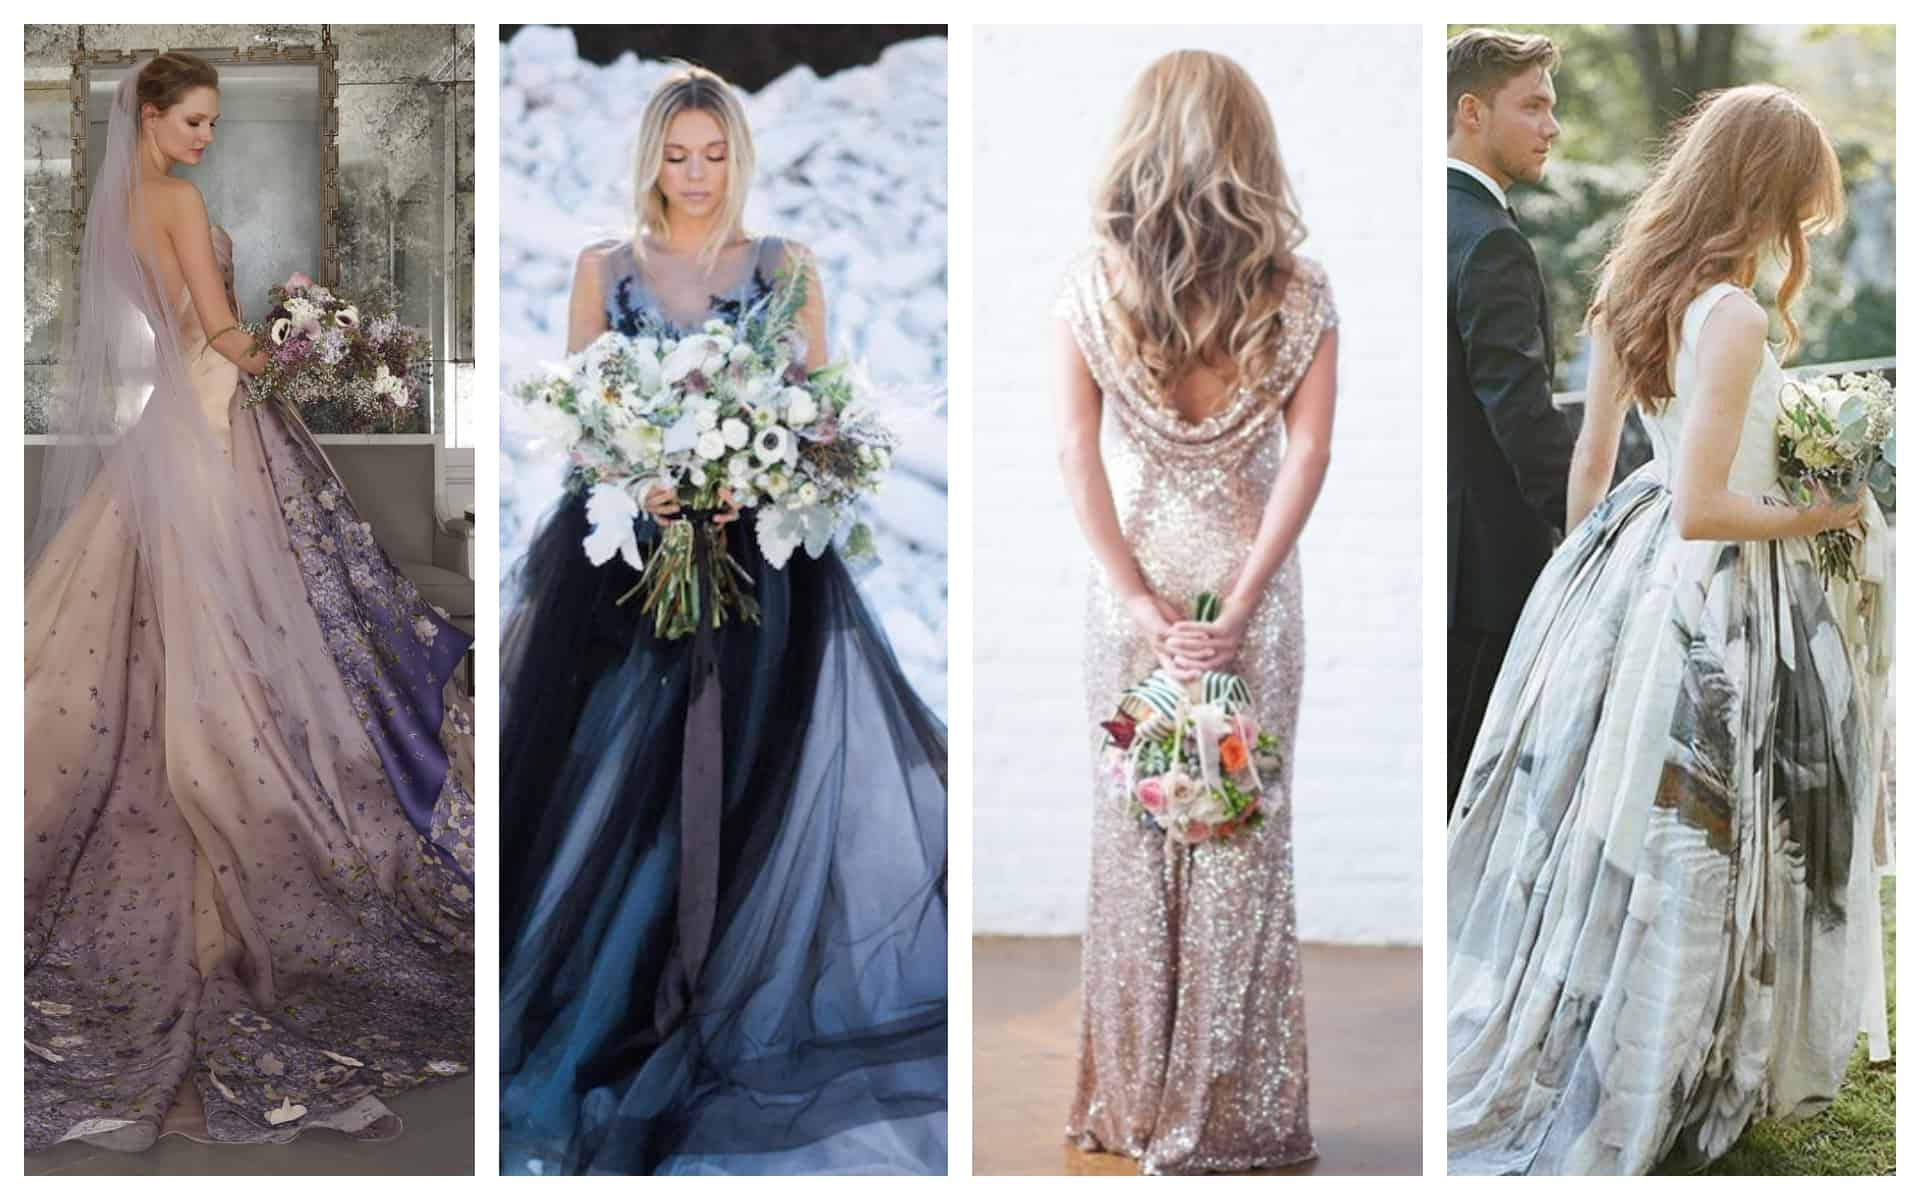 Remarkable And Non-Traditional Wedding Gowns For The